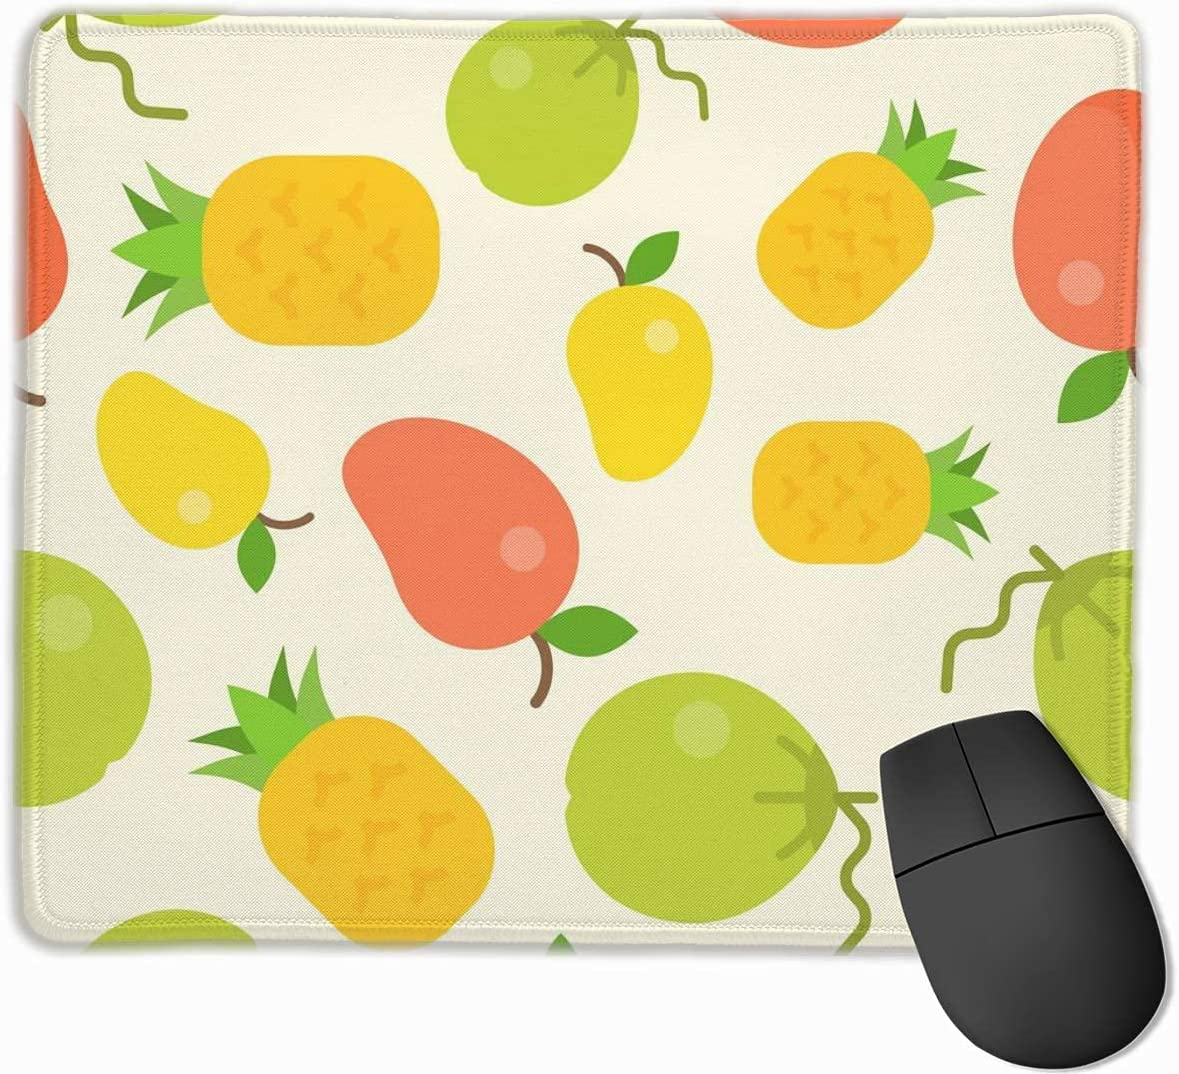 Small Mouse Pad Tropical Fixed price for sale Fruit Pattern Seamless 4 years warranty Coconut Pineappl